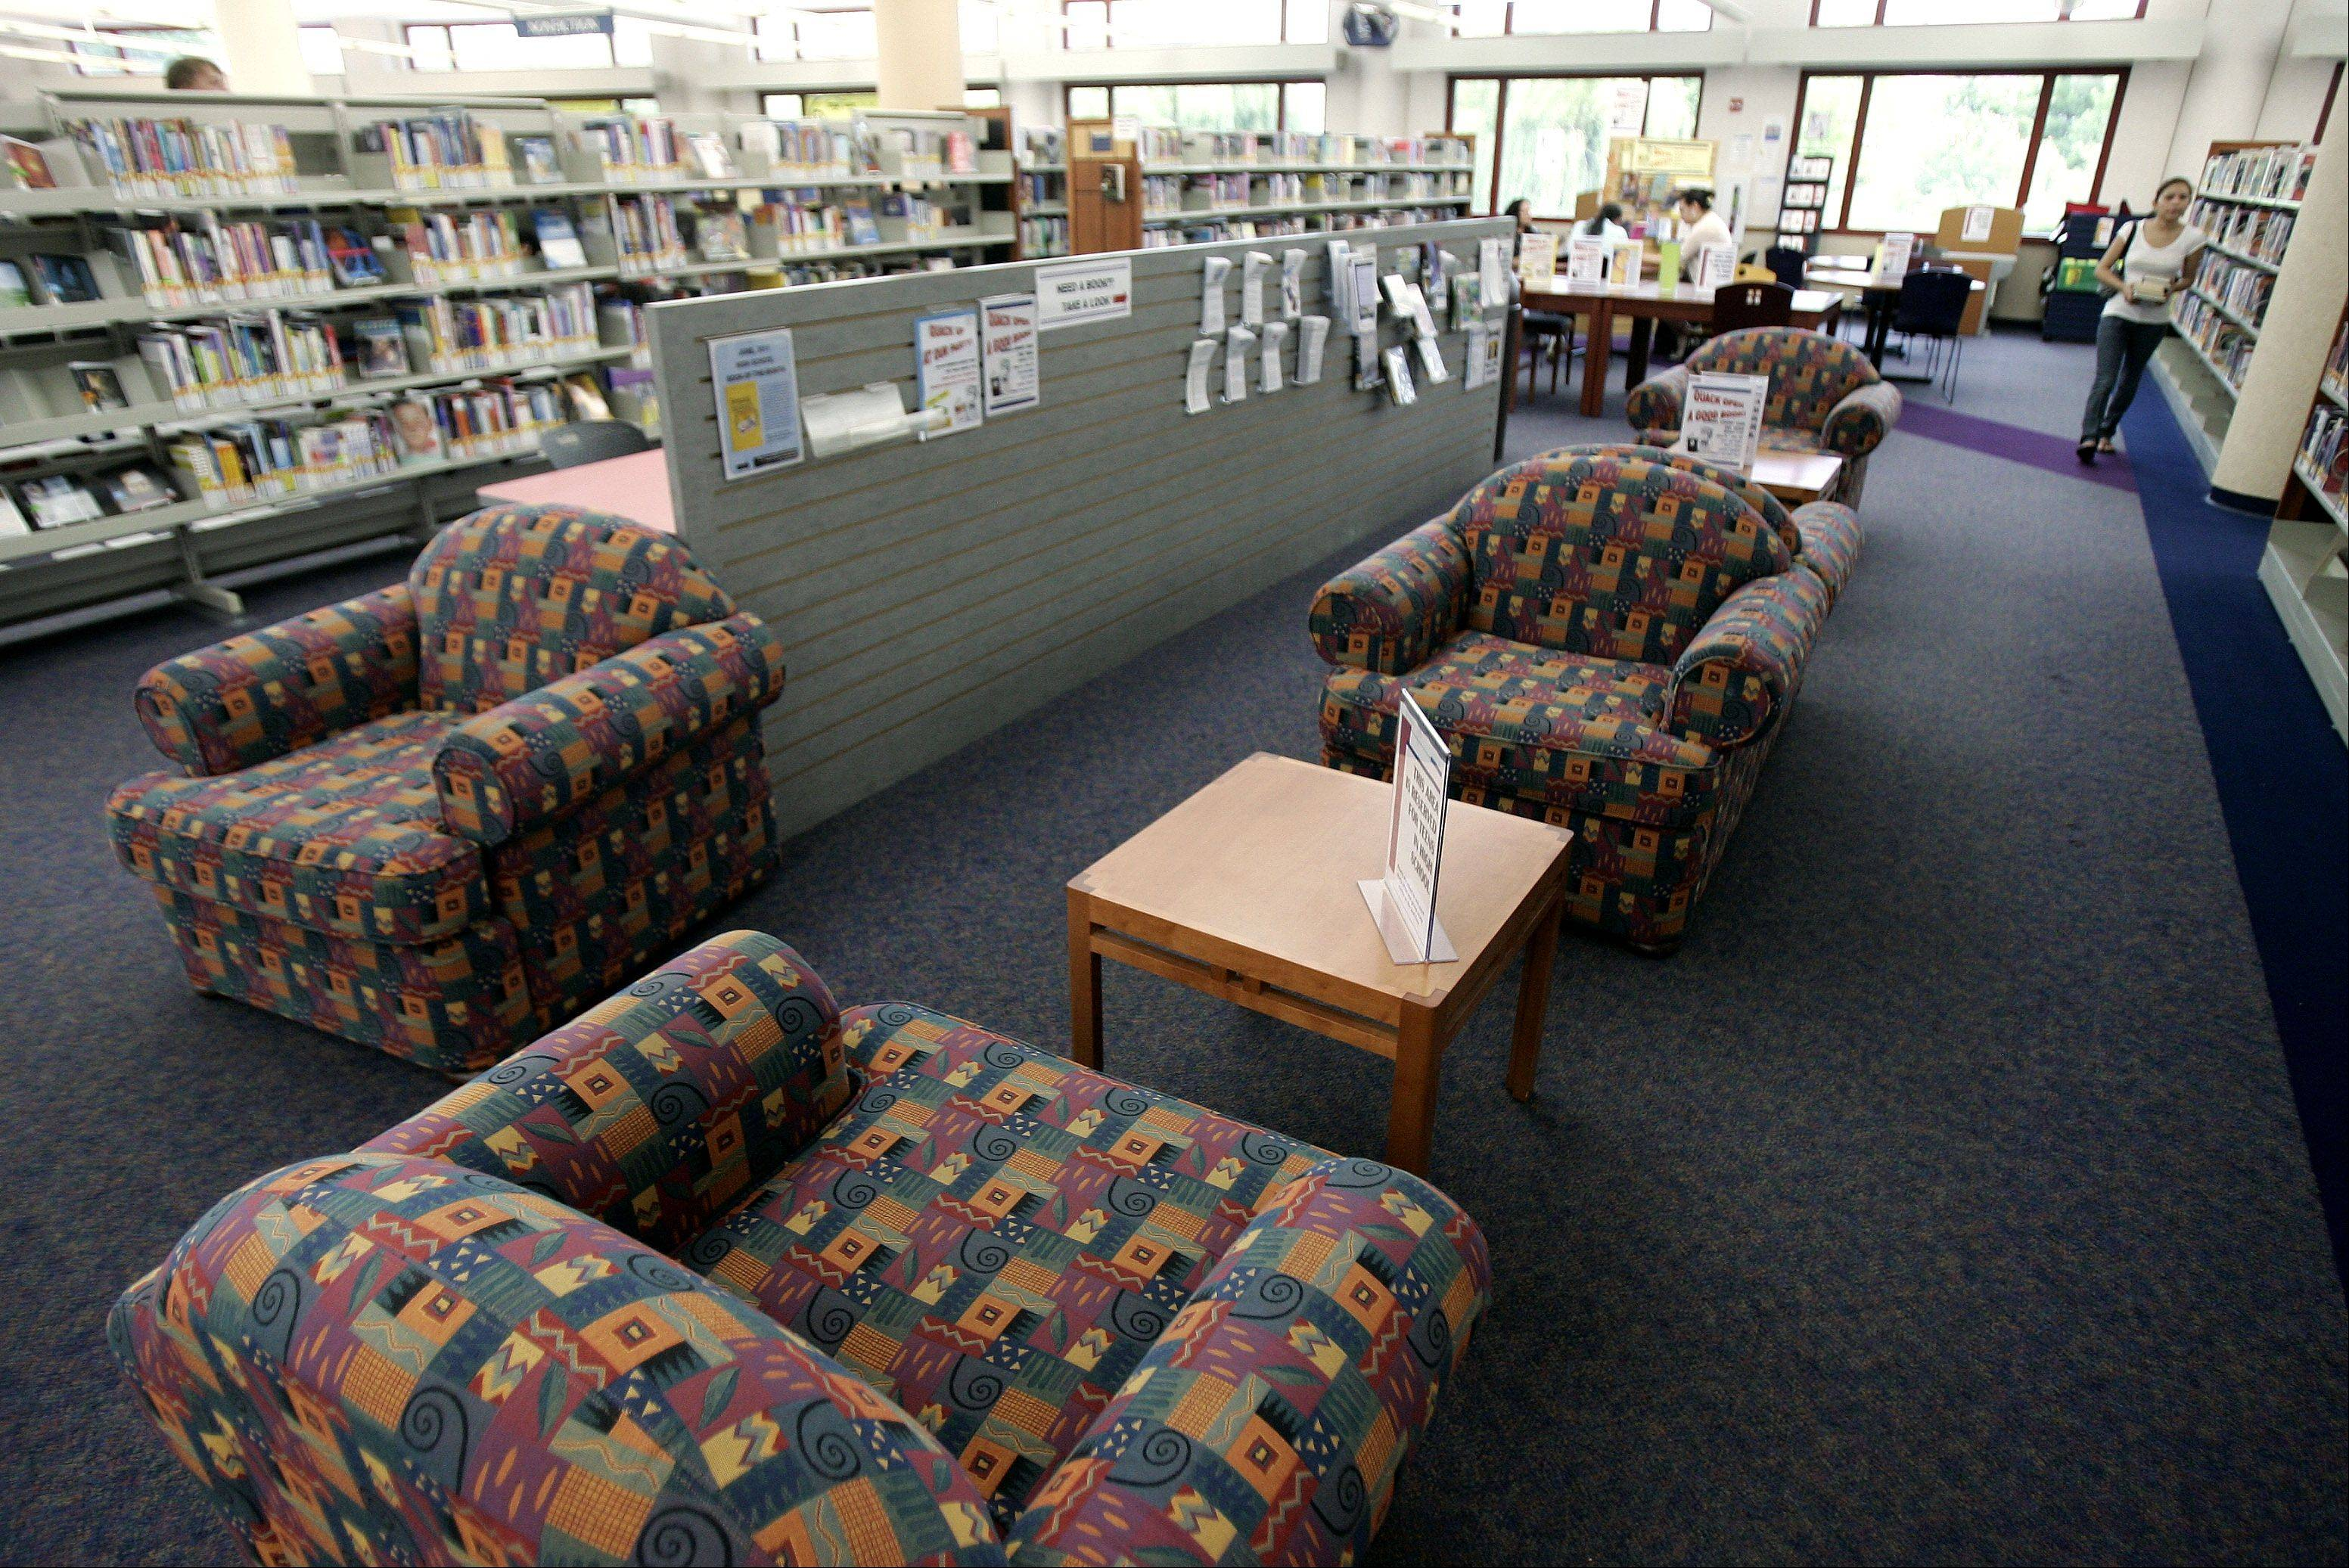 The expanded young adult area is part of the changes inside Fremont Public Library in Mundelein.